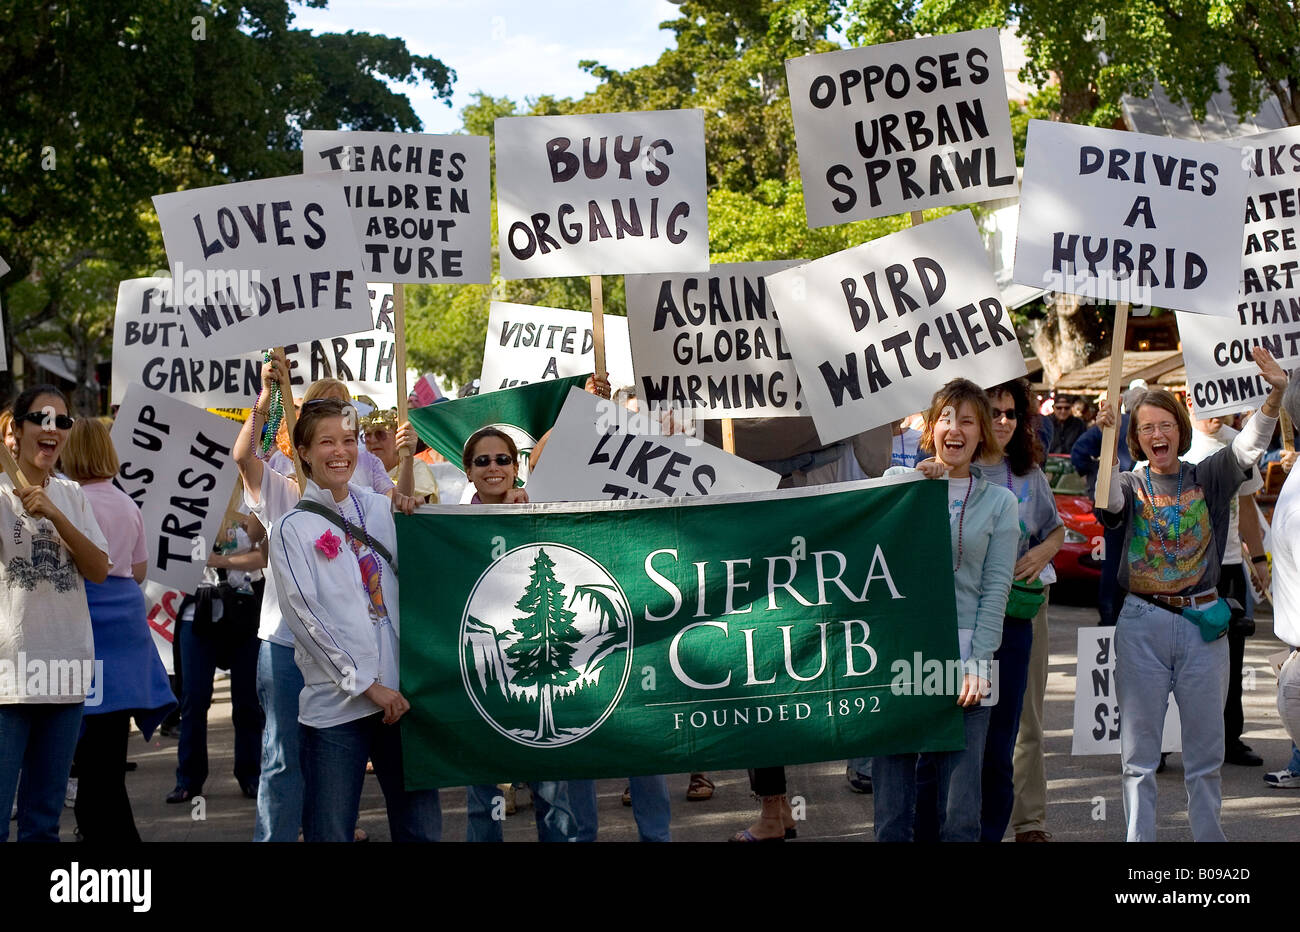 Rally promoting the Sierra Club, with women holding banners promoting environmental issues such as hybrid cars and - Stock Image